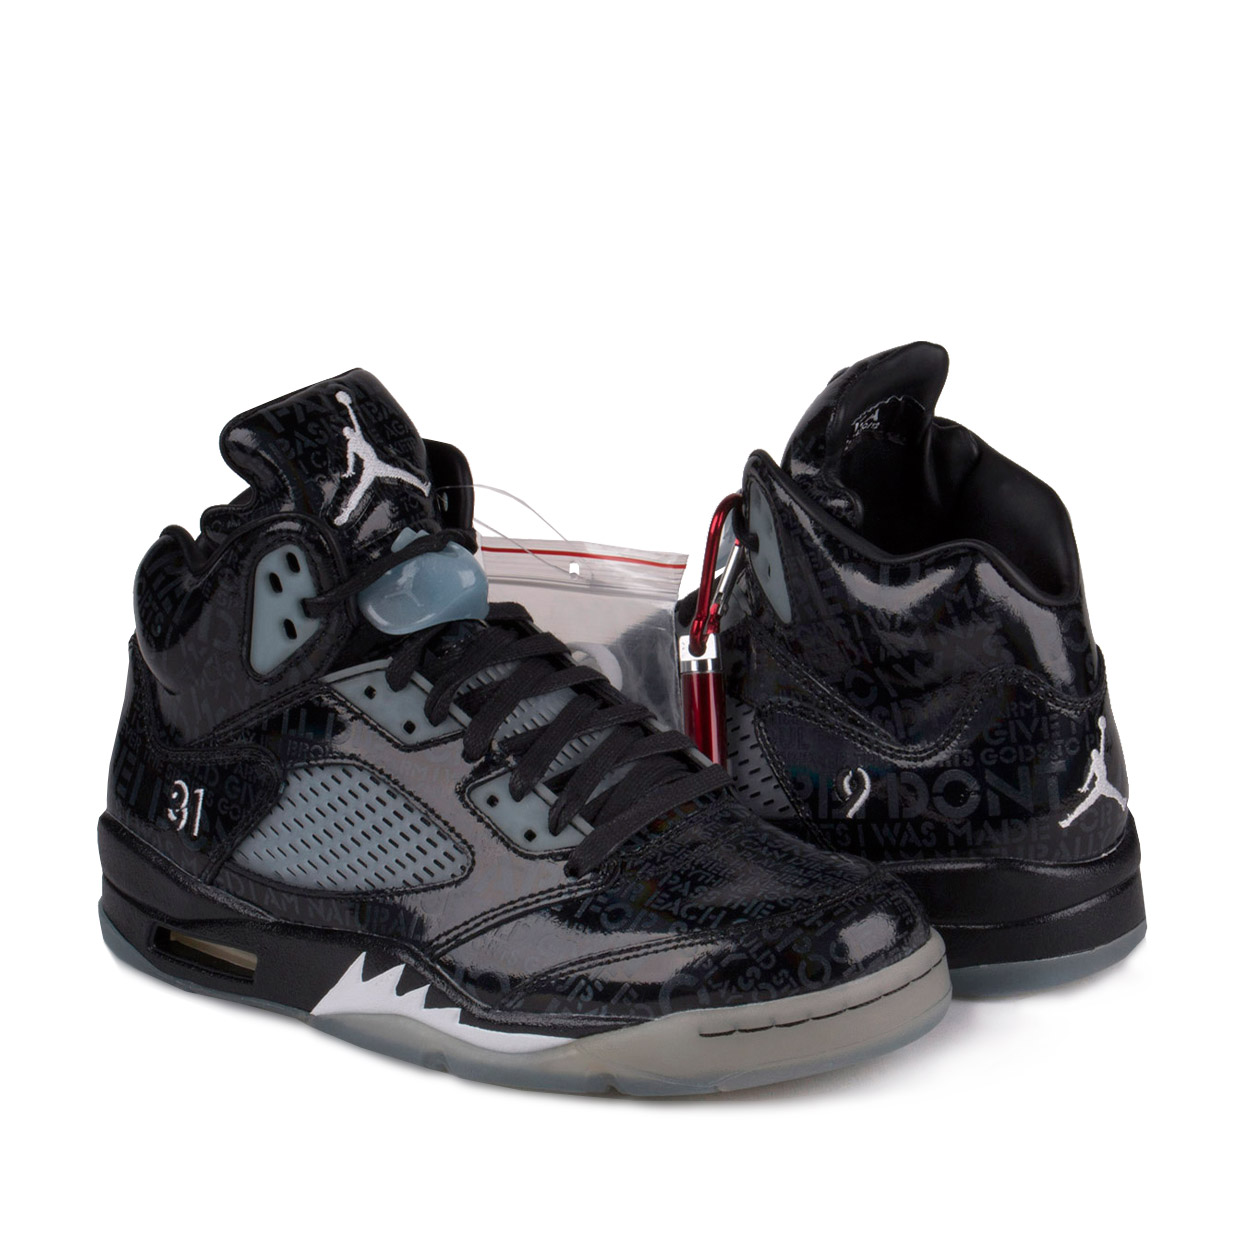 sale retailer 48fd5 22742 nike air jordan 4 doernbecher images